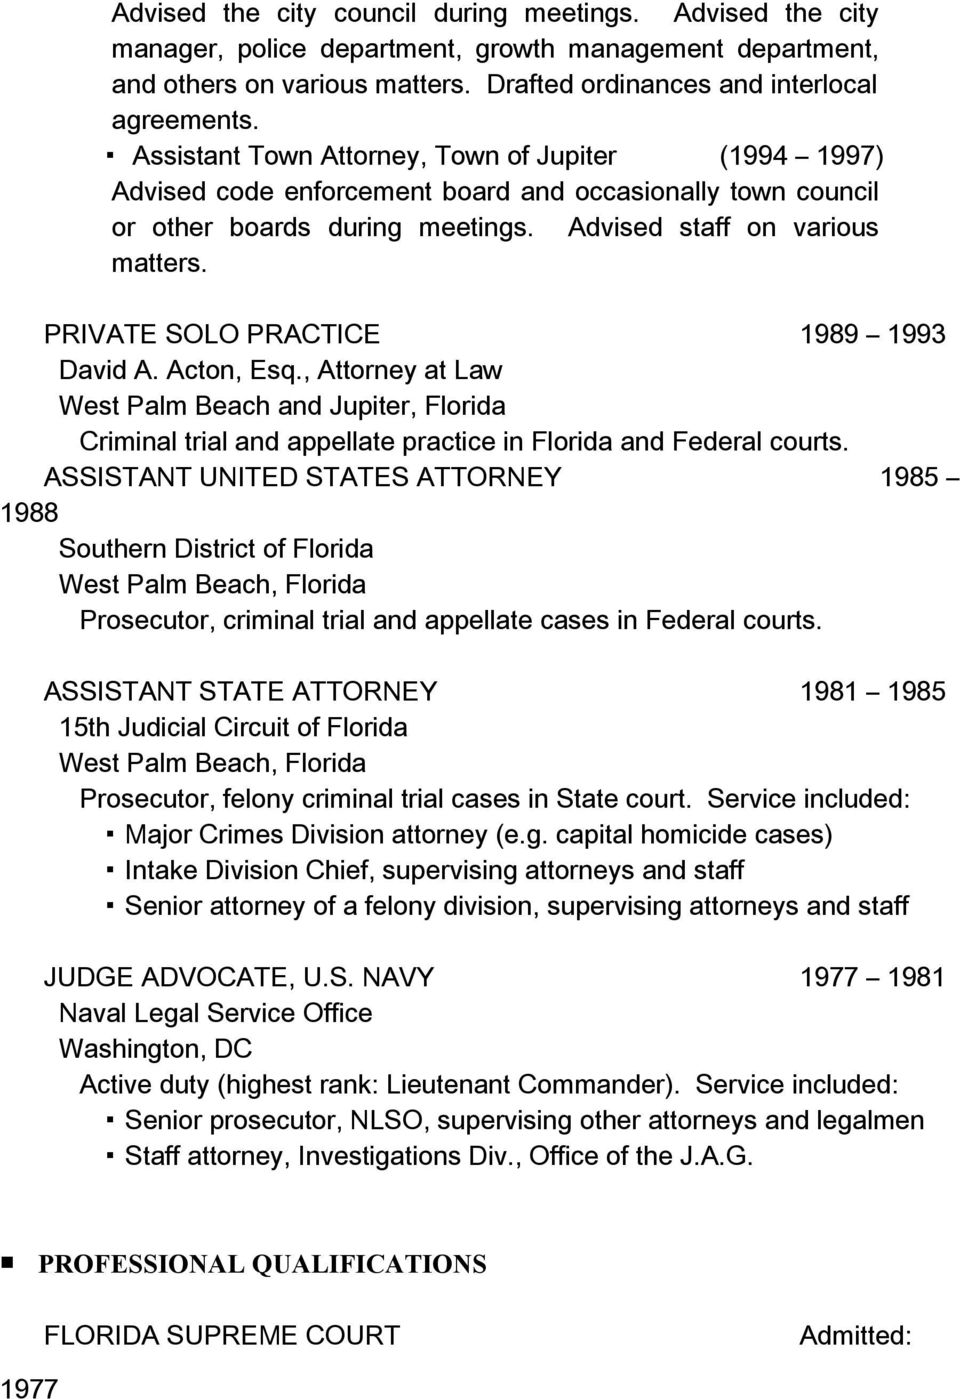 PRIVATE SOLO PRACTICE 1989 1993 David A. Acton, Esq., Attorney at Law West Palm Beach and Jupiter, Florida Criminal trial and appellate practice in Florida and Federal courts.